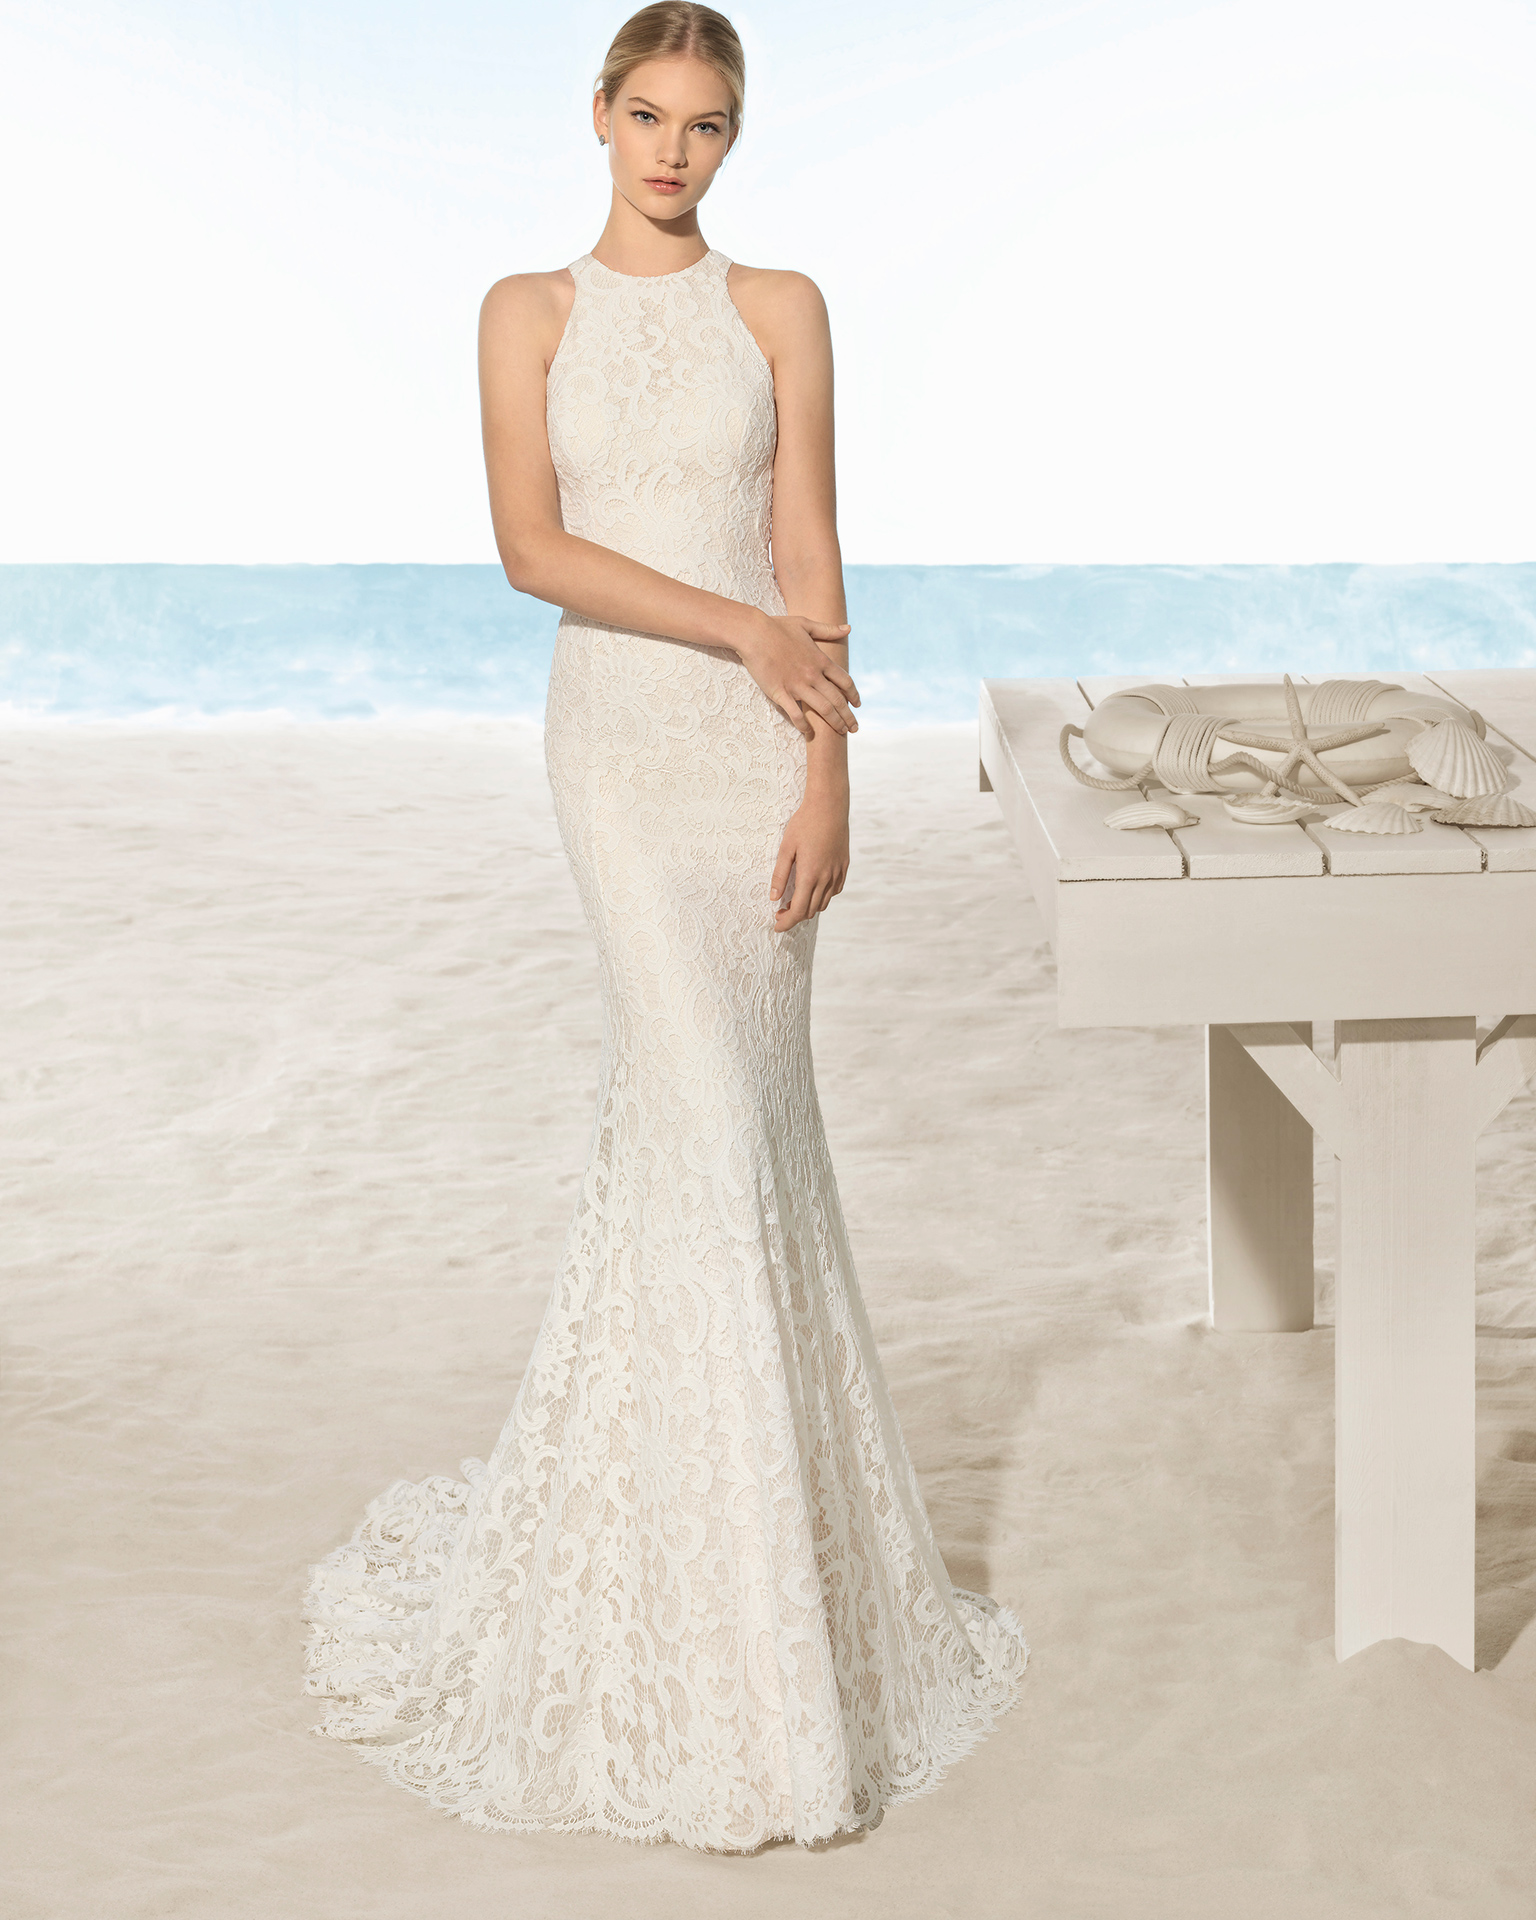 Mermaid-style lace wedding dress with halter neckline and round opening in back, in natural and nude.